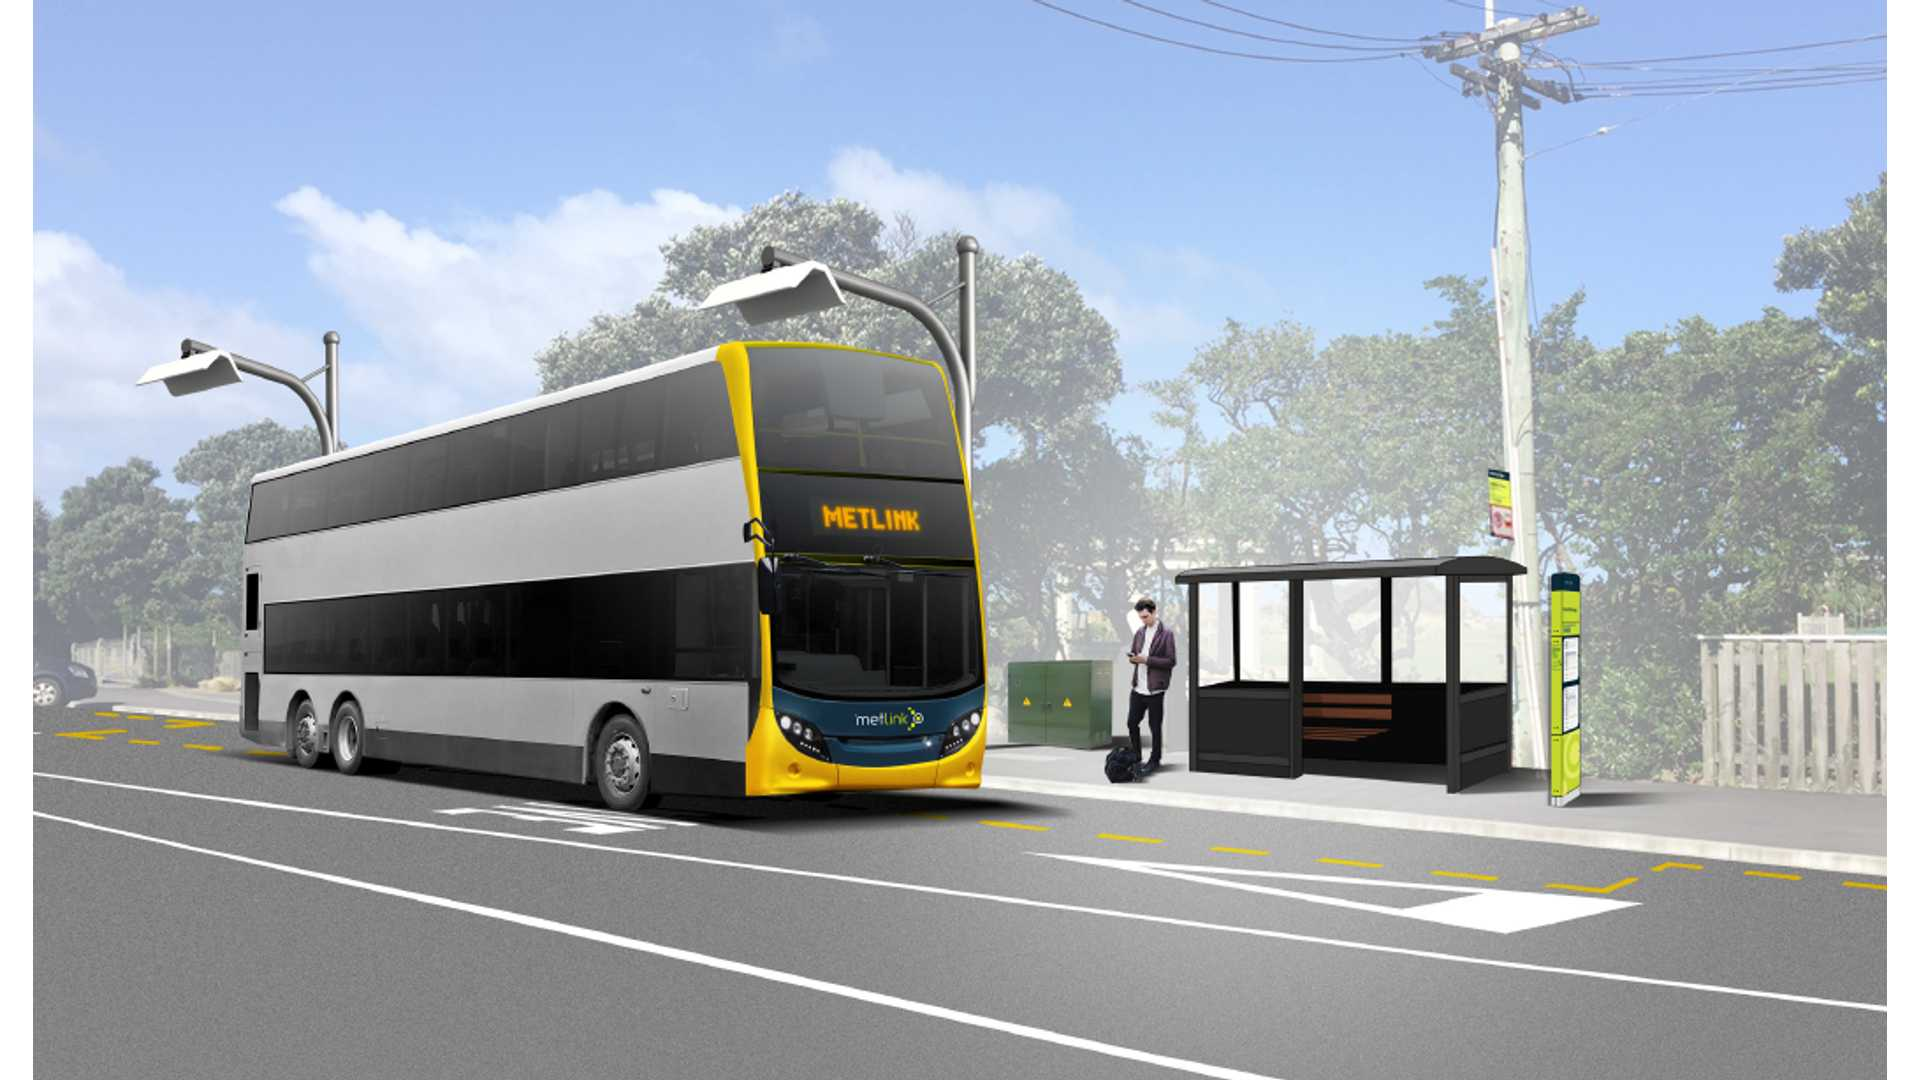 First electric double-decker busses in the WORLD in New Zealand